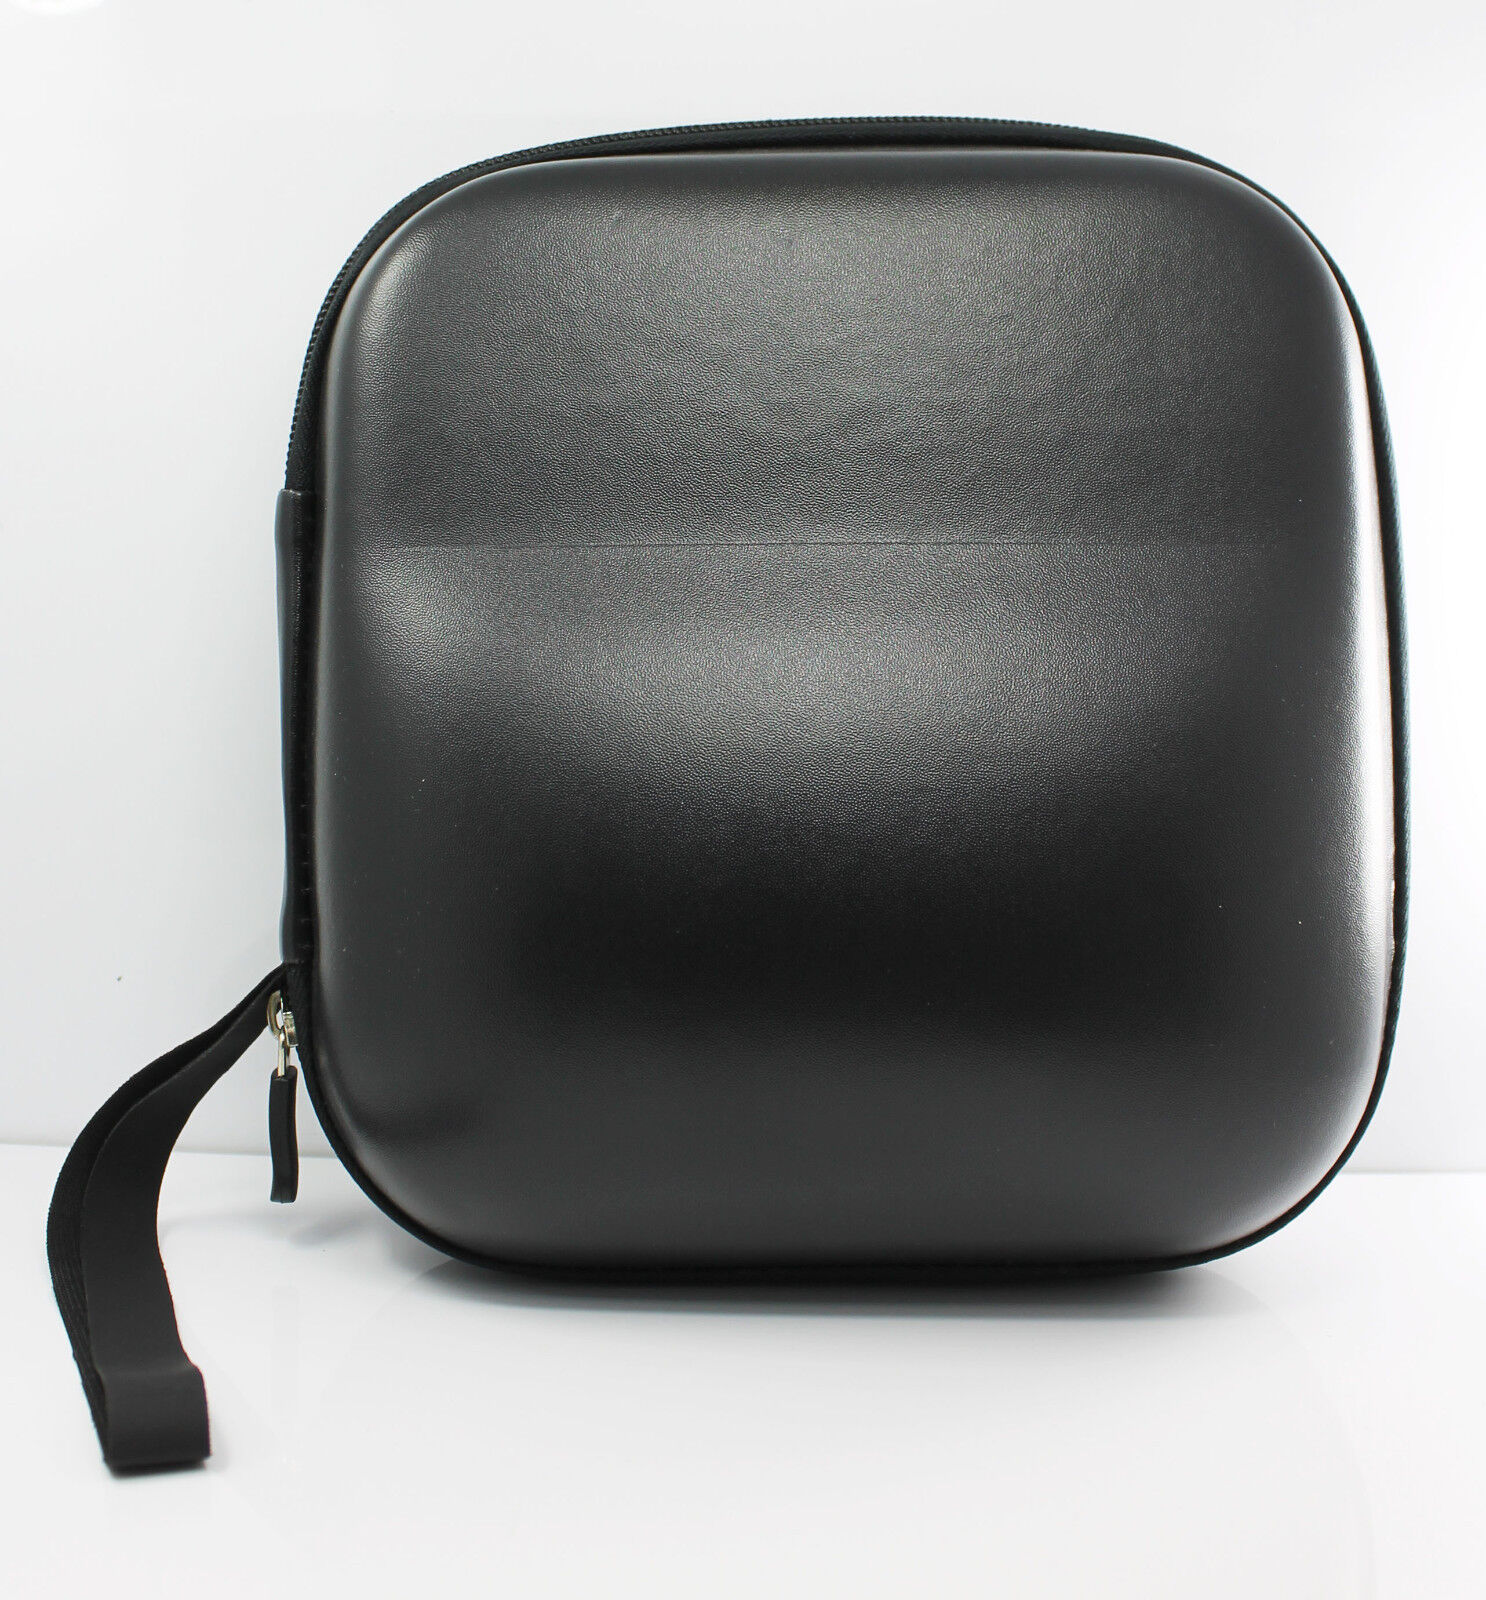 carrying hard leather case for over ear headphones full. Black Bedroom Furniture Sets. Home Design Ideas